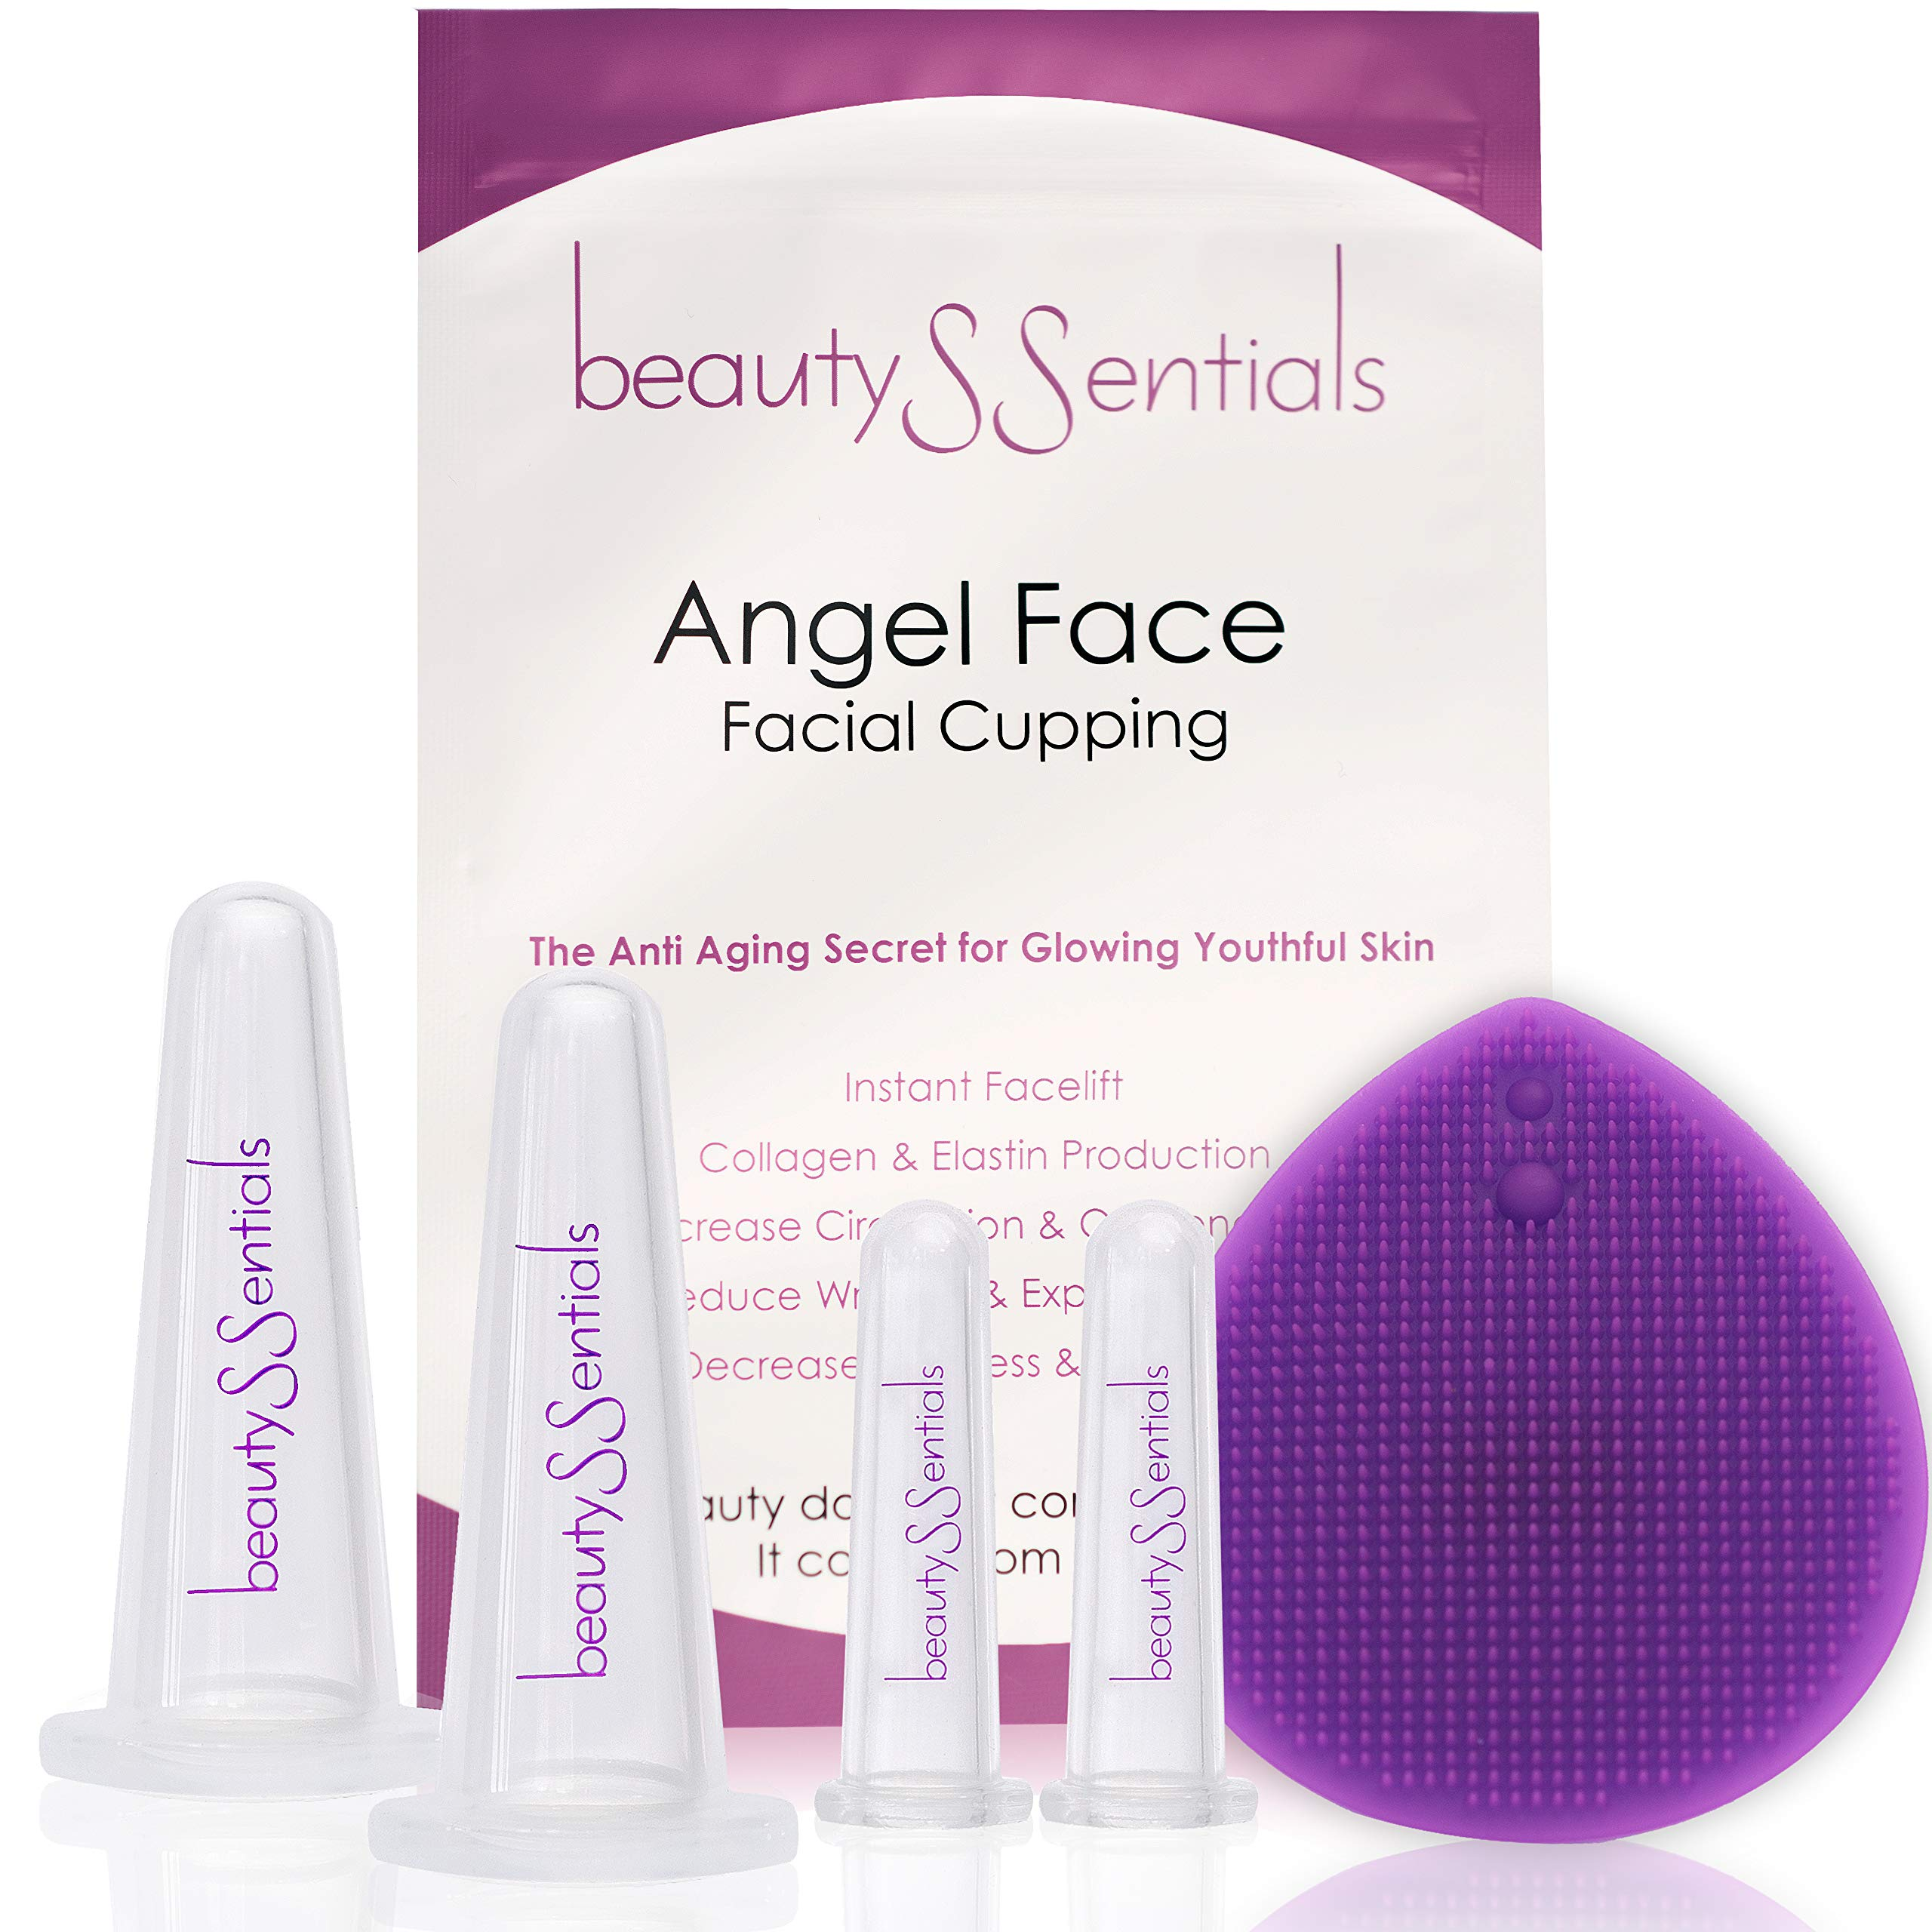 Facial Cupping Set for Glowing Skin - Anti Aging Face Cupping Set to Reduce Fine Lines & Wrinkles - Best Silicone Cupping Therapy Set, Bonus Facial Cleansing Brush & Travel Pouch by beautySSentials